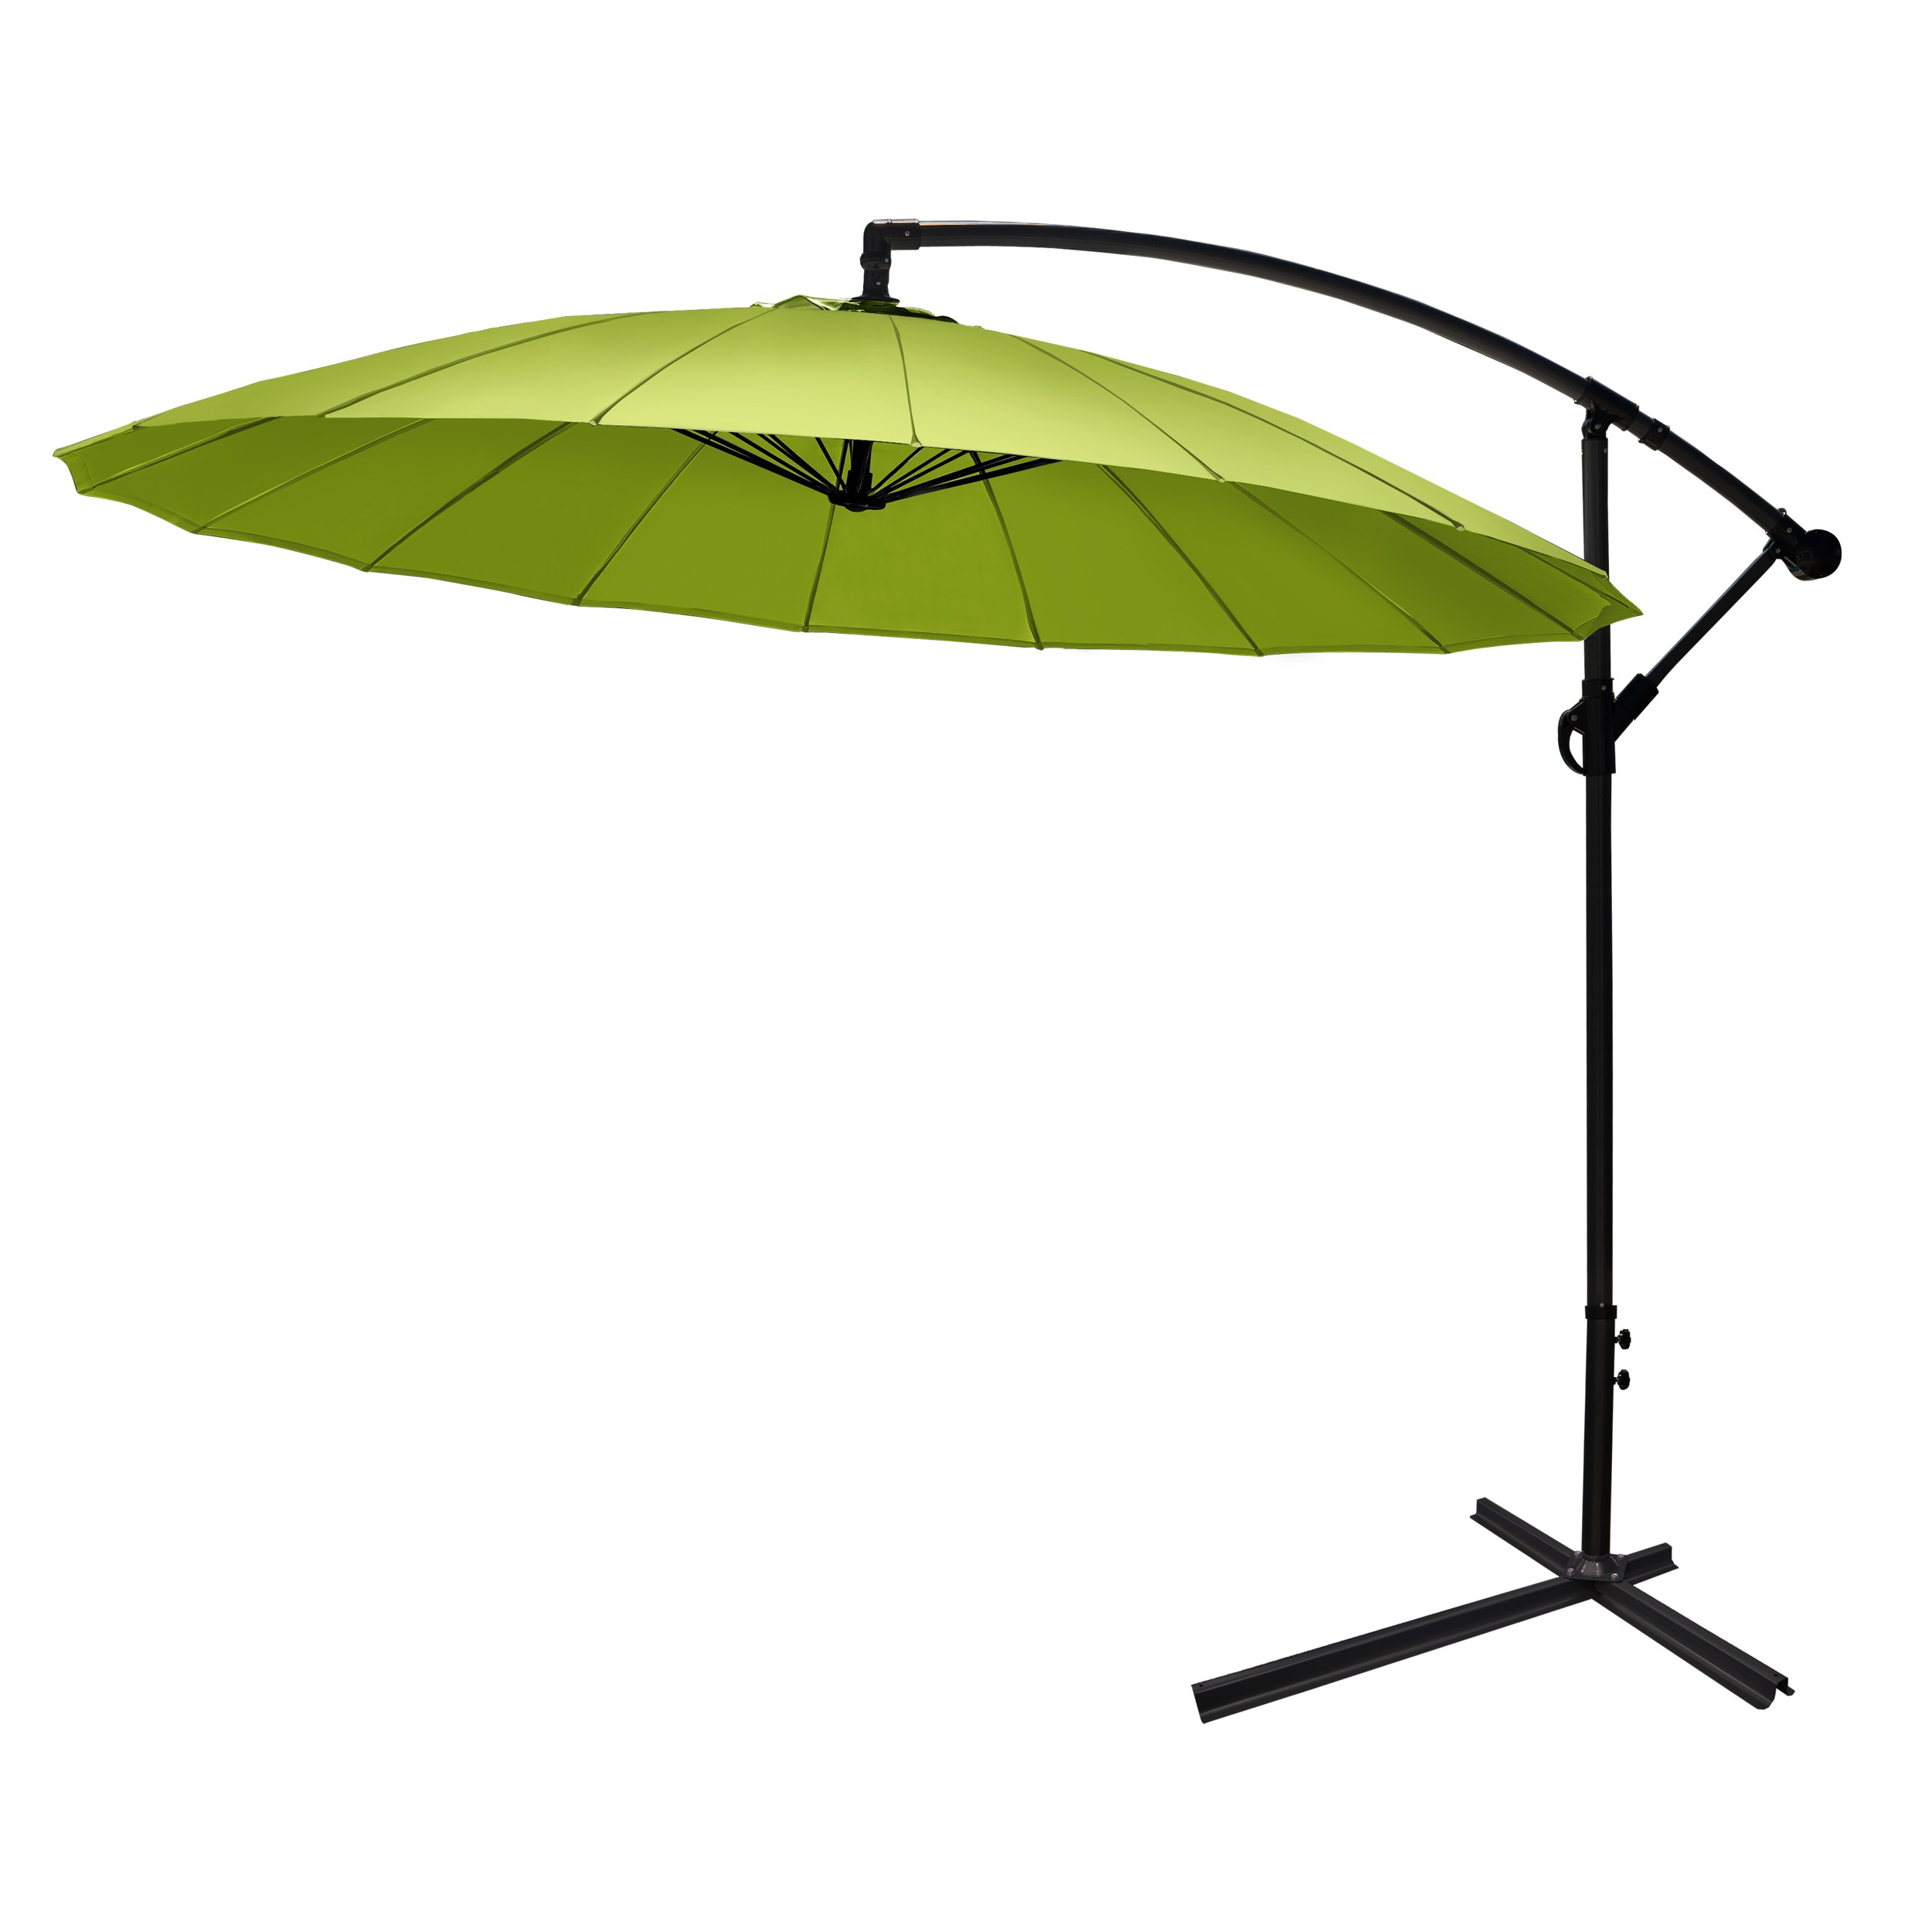 parasol vert commandez nos parasols verts design petit prix rvdd co. Black Bedroom Furniture Sets. Home Design Ideas